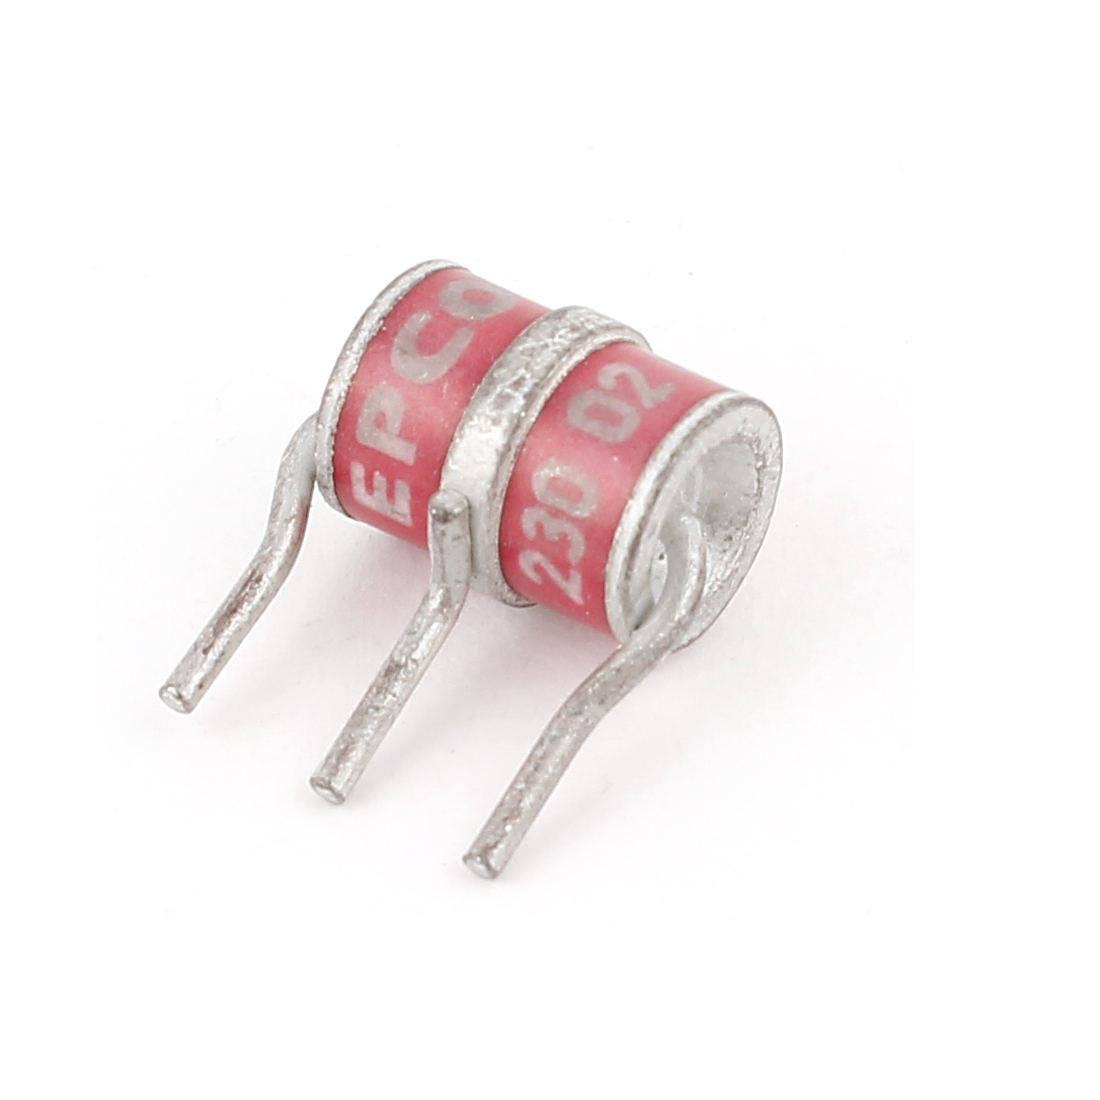 Gas Discharge Tube Littelfuse EPCOS 230V 10x8mm T87-A230X Red